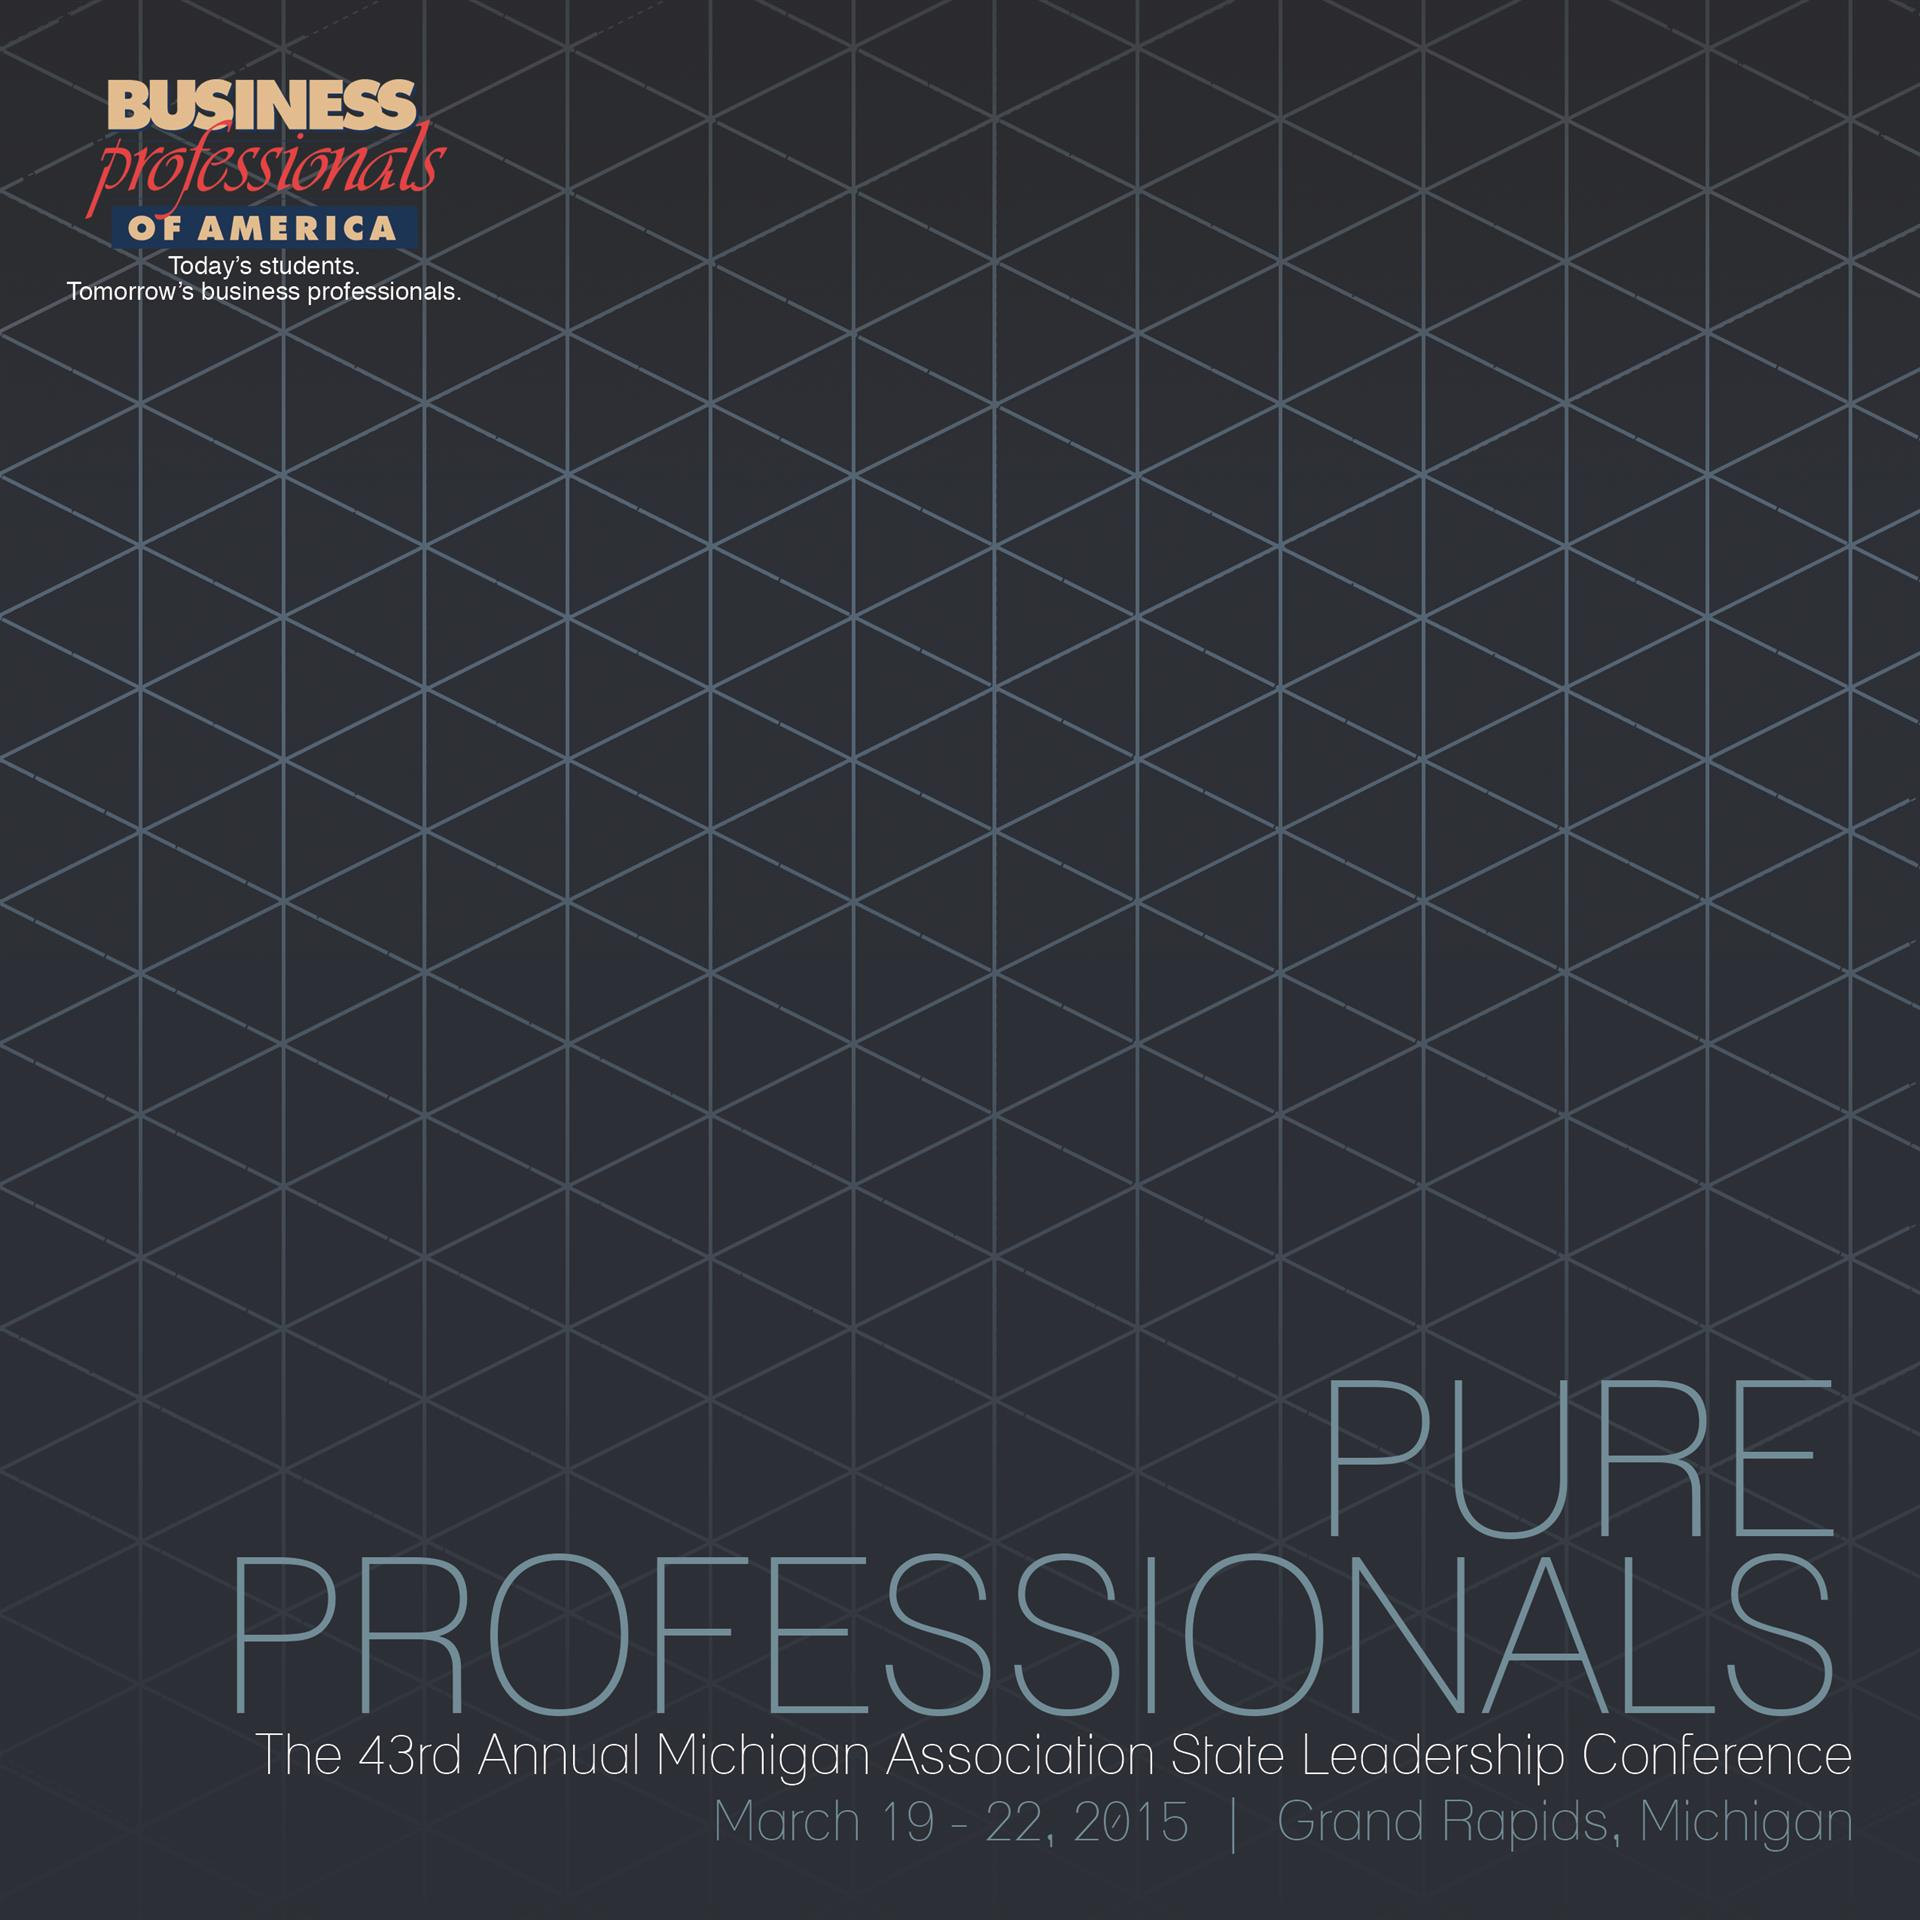 2015 Pure Professionals